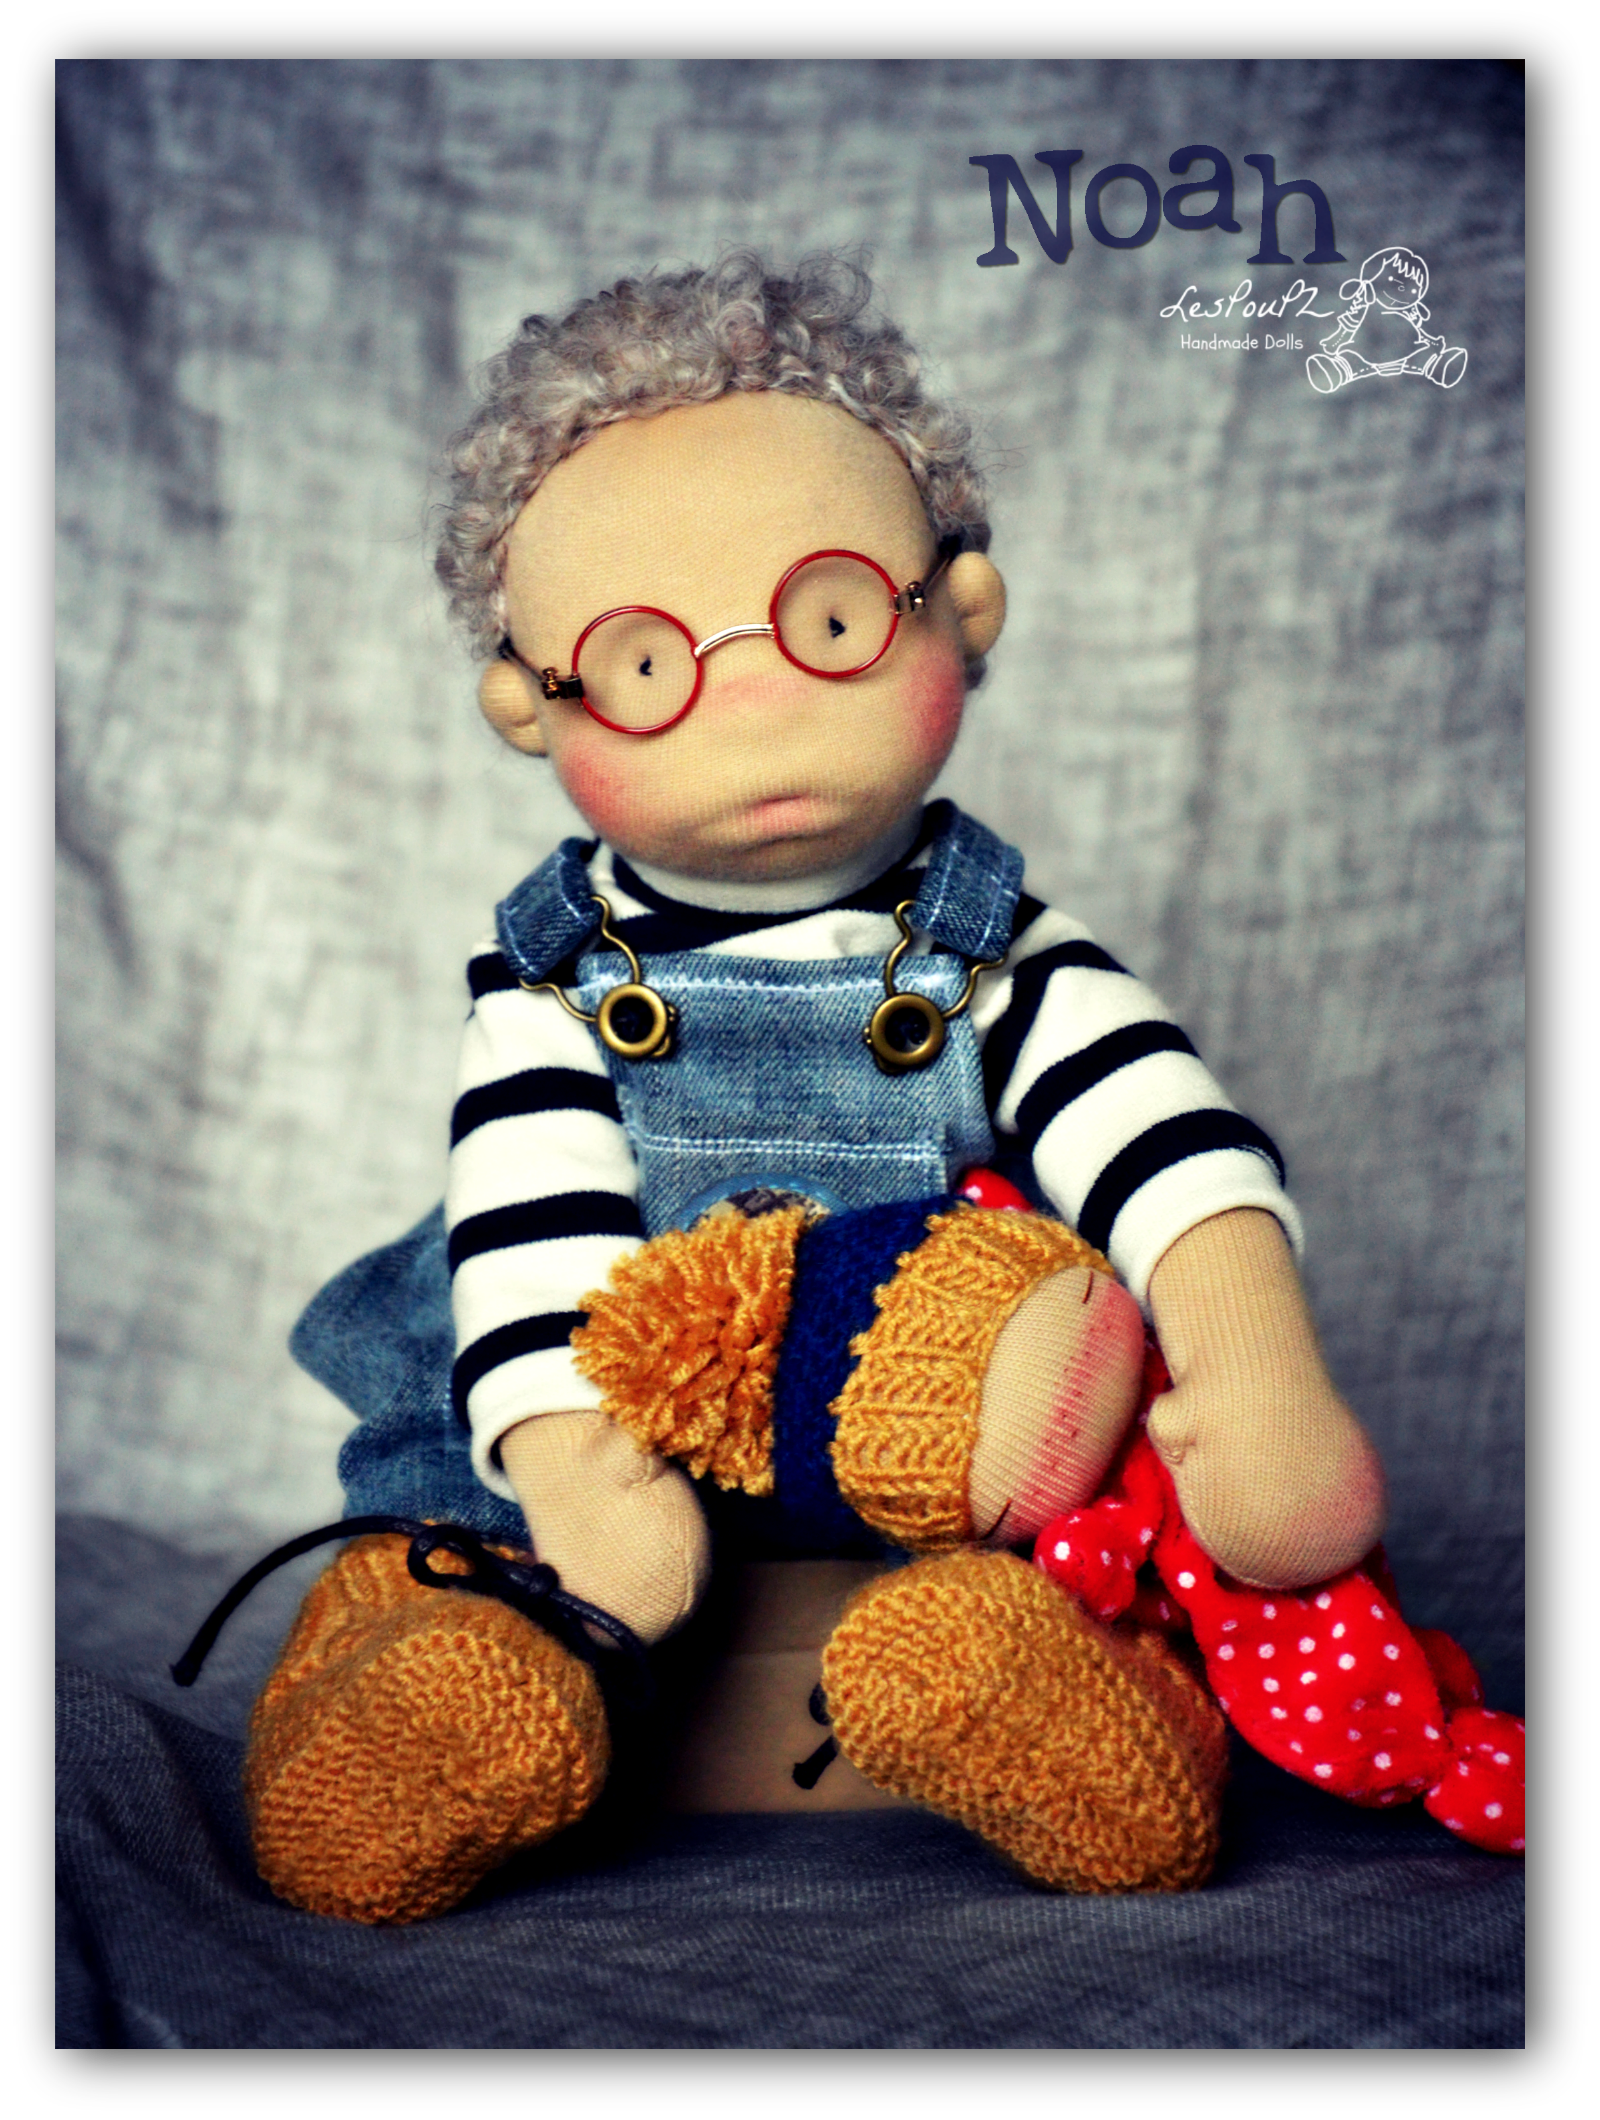 Noah is a Petit Pois boy doll. He's 12 inches (30cm).